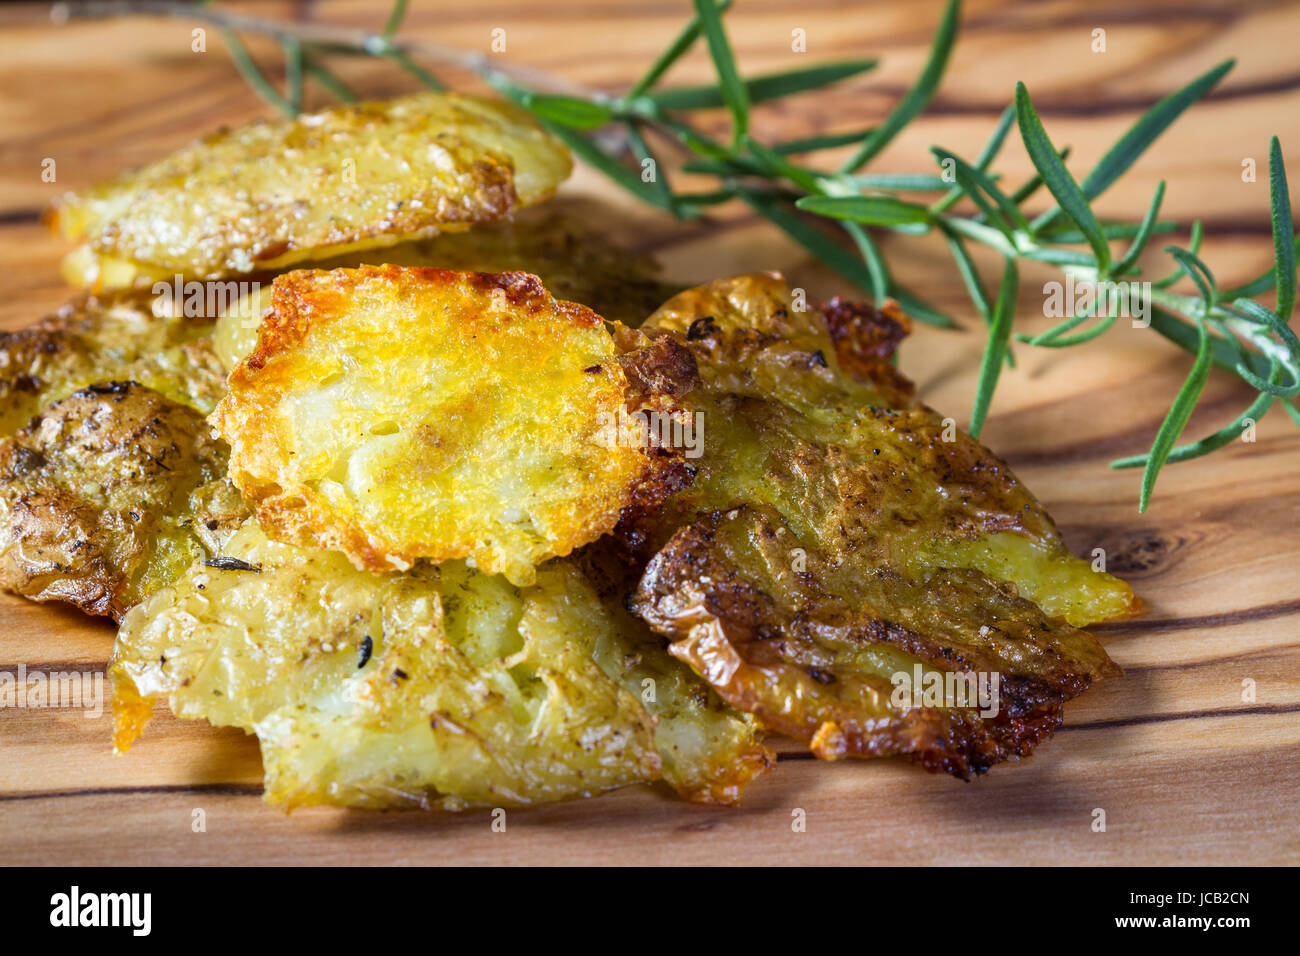 serving of potatoes that have been smashed and then baked with seasoned oil and spices as a side dish - Stock Image